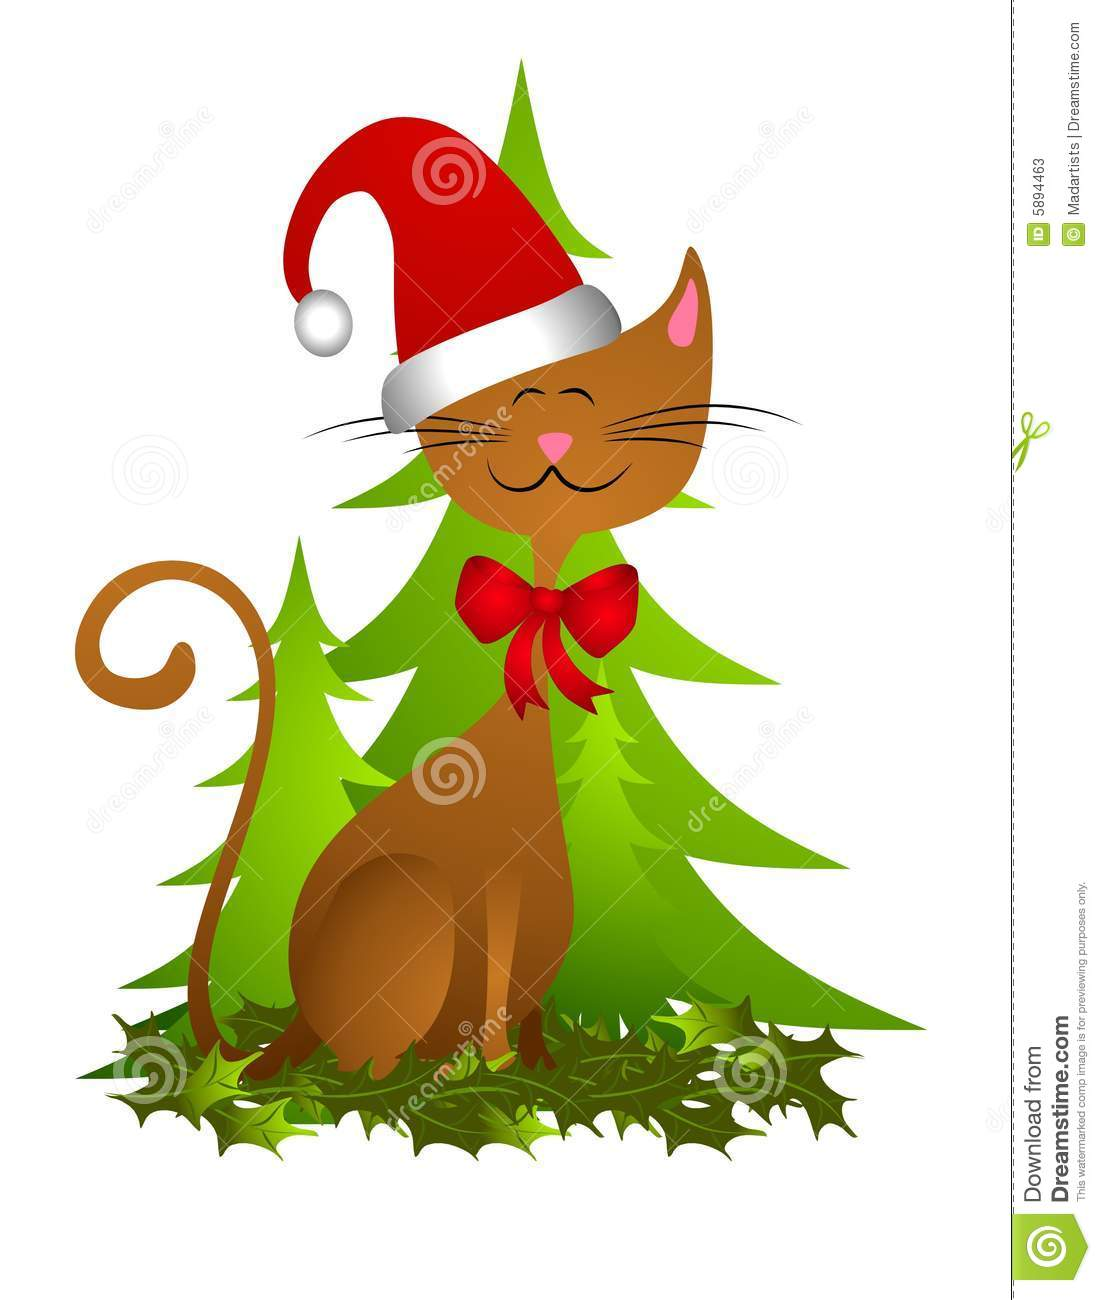 Clip Art Illustration Featuring A Cute Cat Wearing Santa Hat With Bow